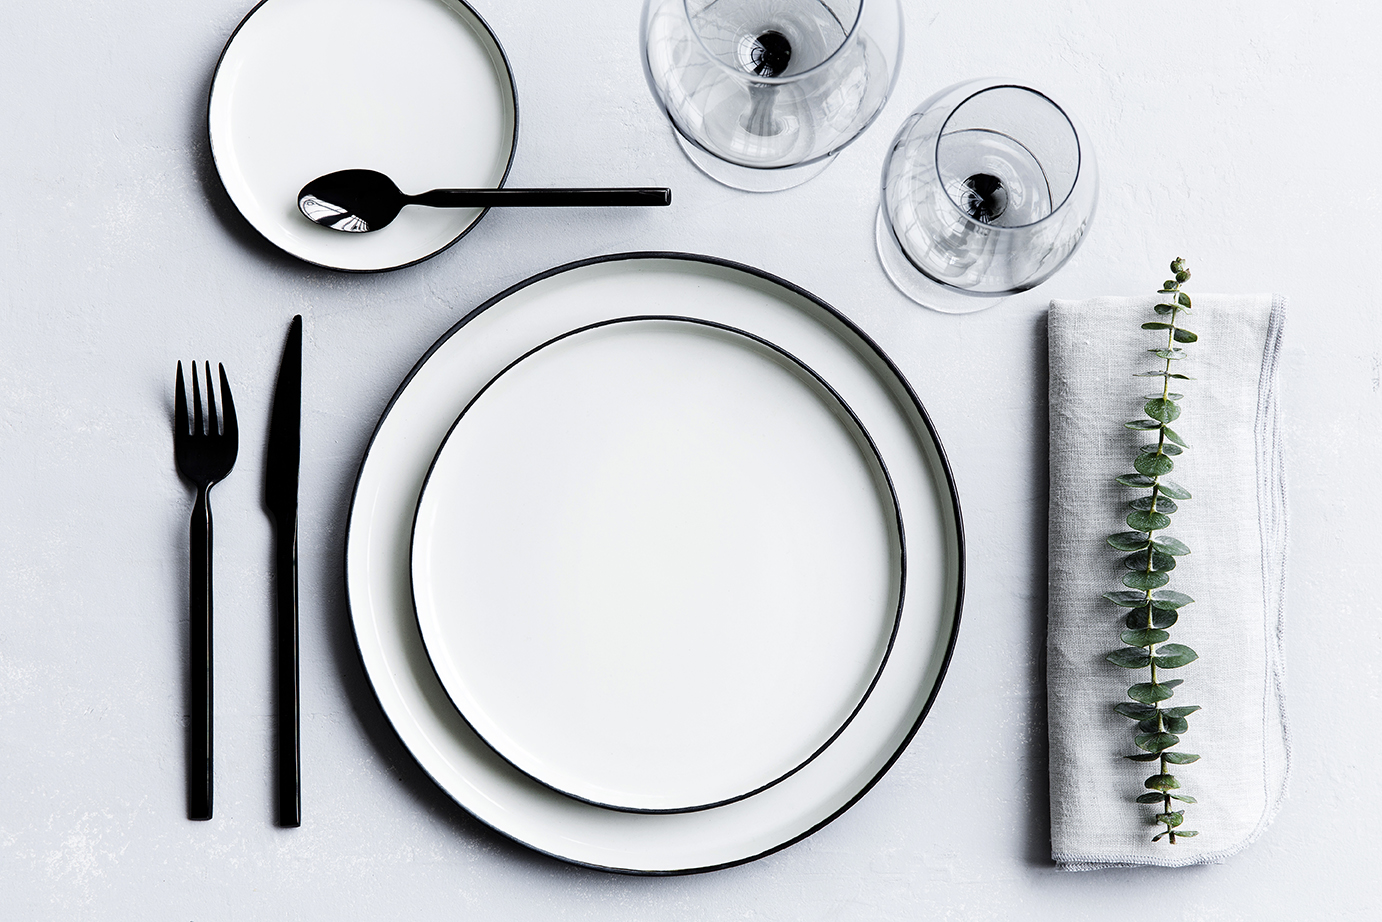 ... The table is set - via cocolapinedesign.com ... & The table is set - COCO LAPINE DESIGNCOCO LAPINE DESIGN